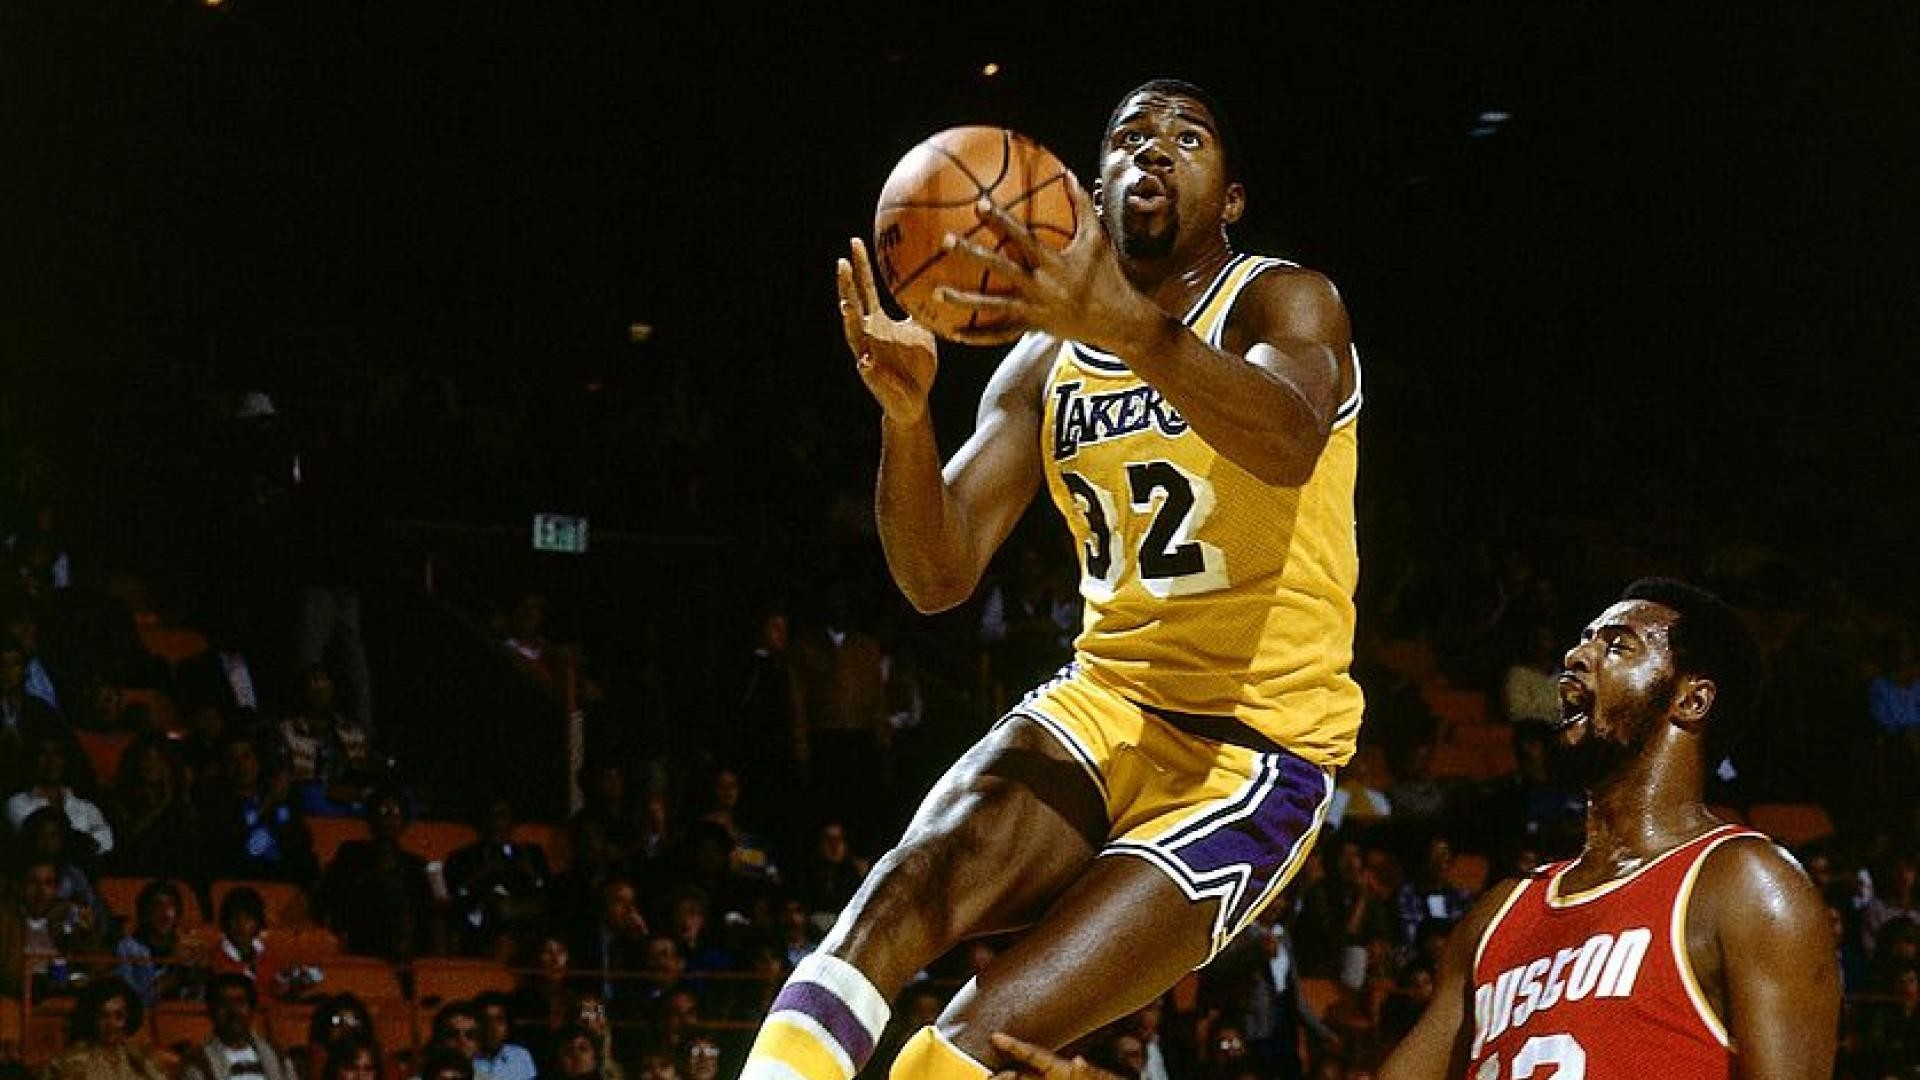 1920x1080 Magic Johnson's size and playmaking ability made him stand out in NBA lore.